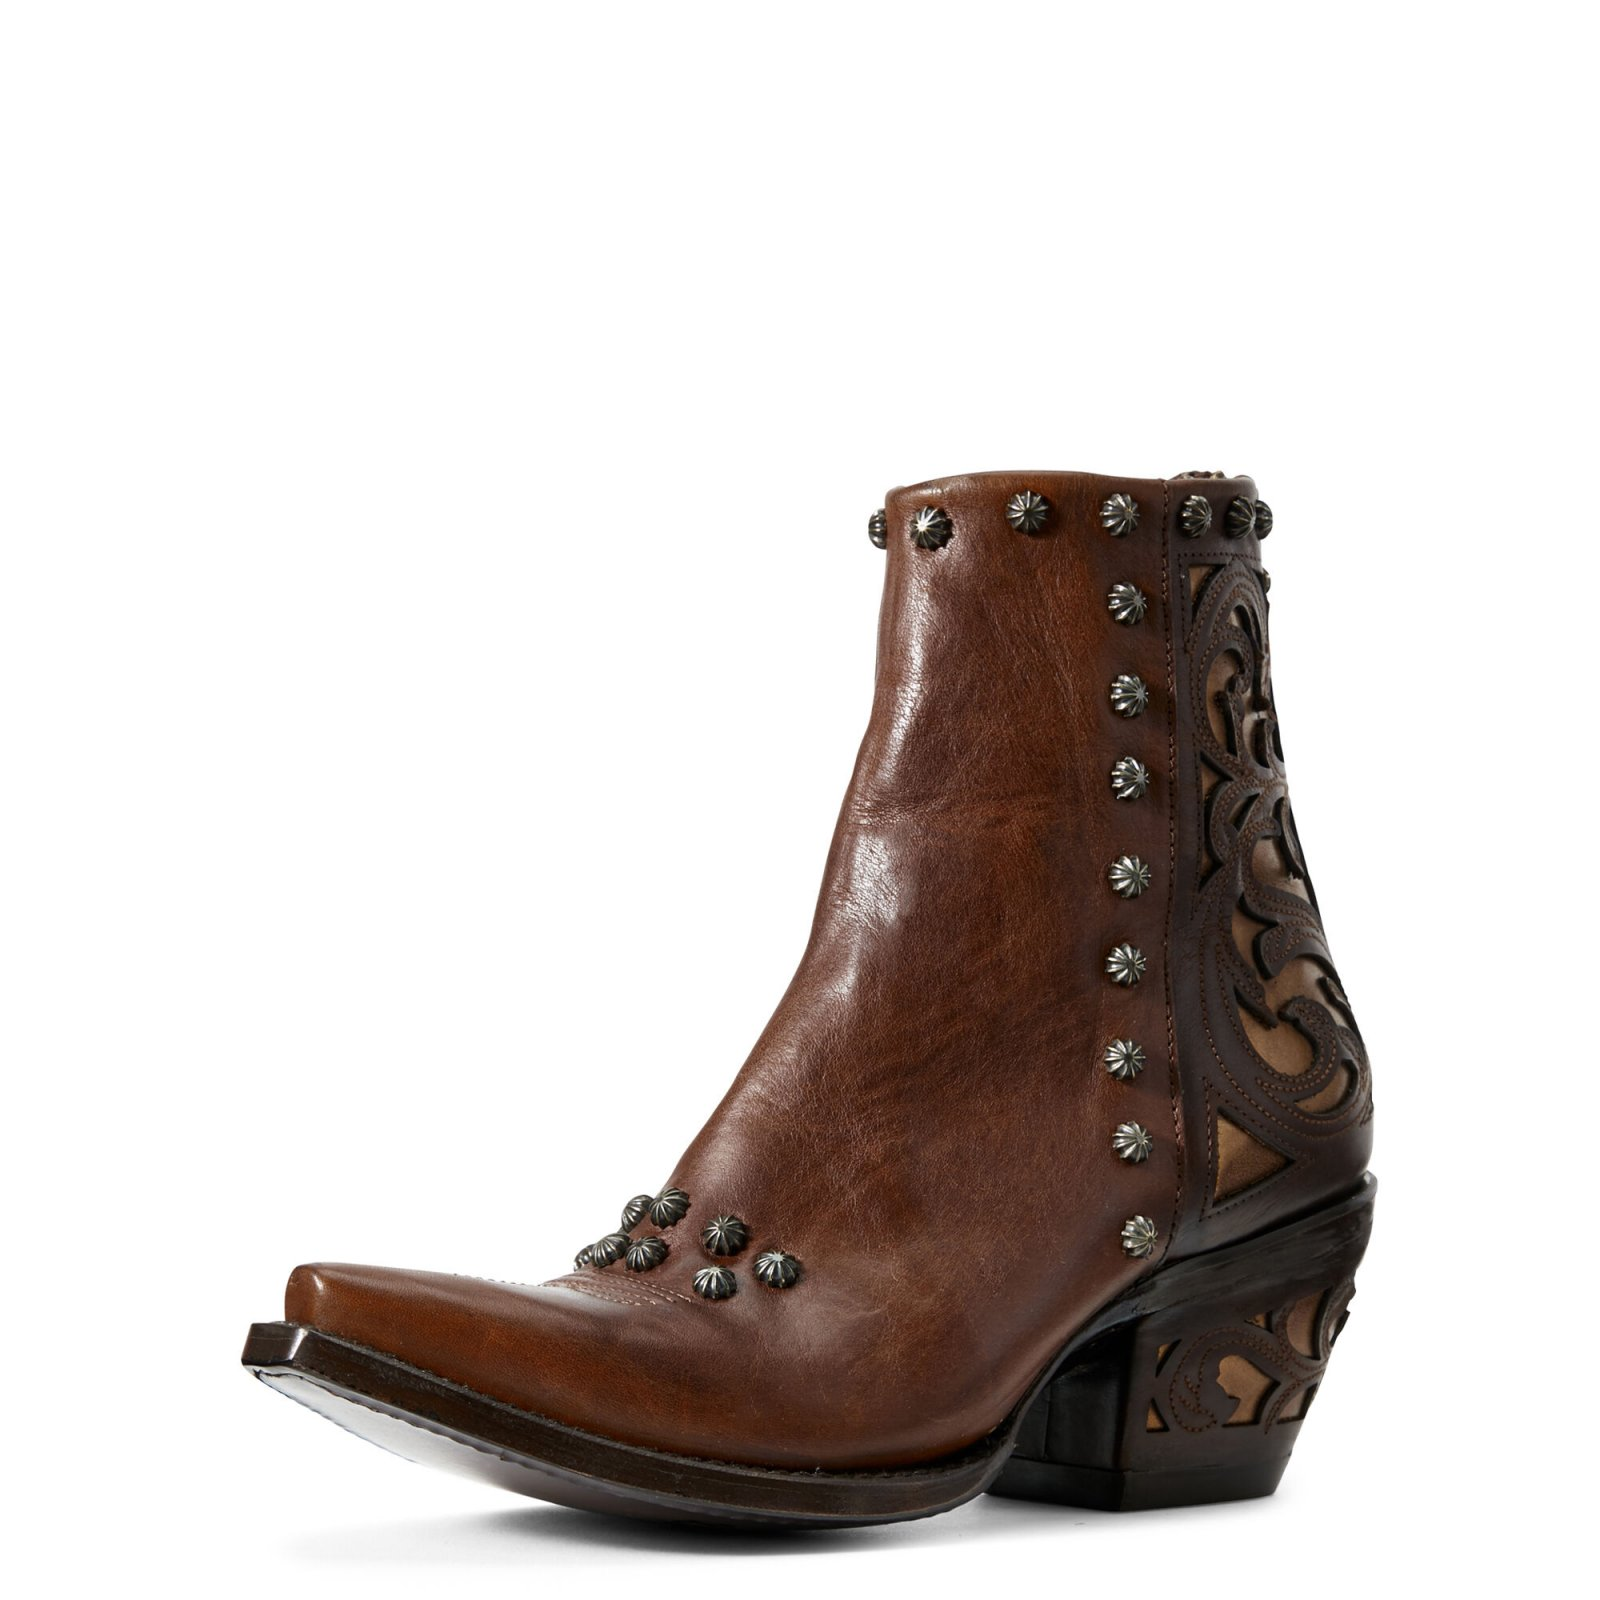 Diva Western Boot from Ariat